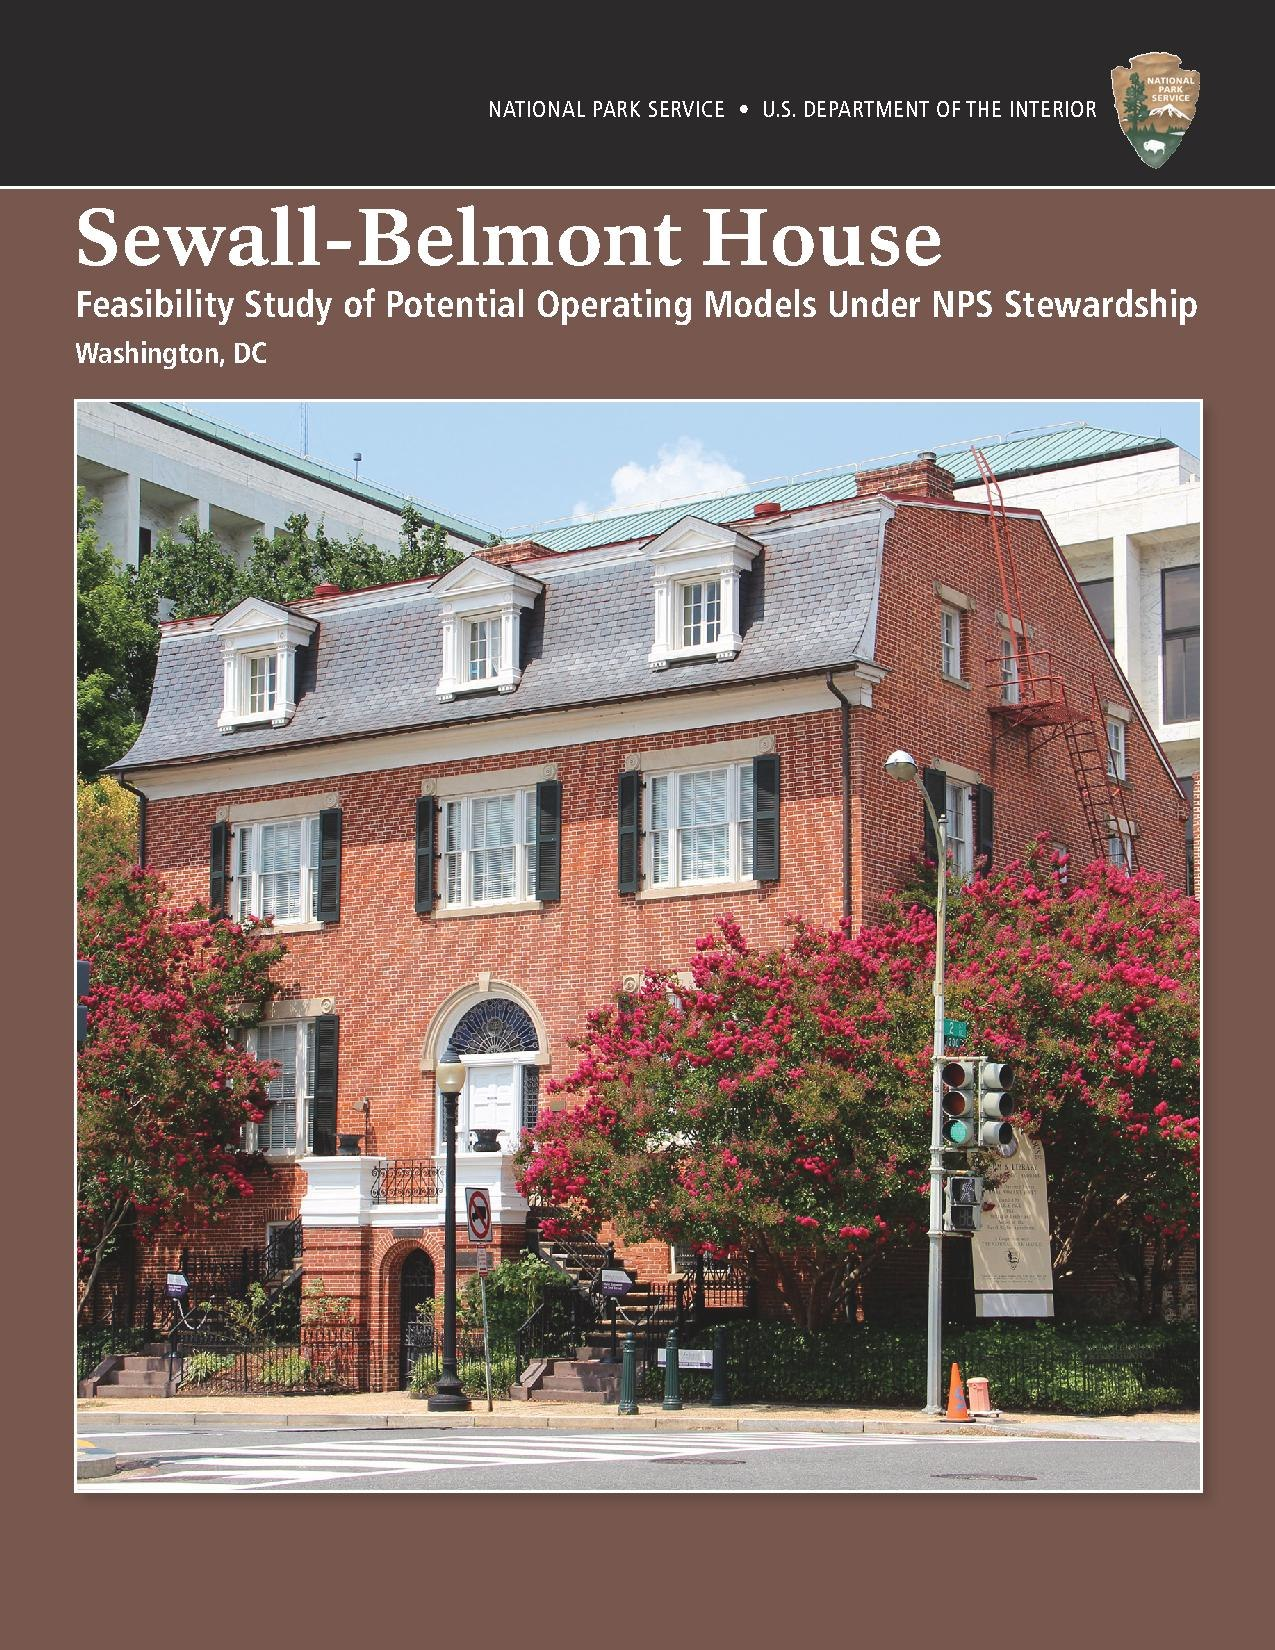 File:Sewall Belmont House Feasibility Study of Potential Operating